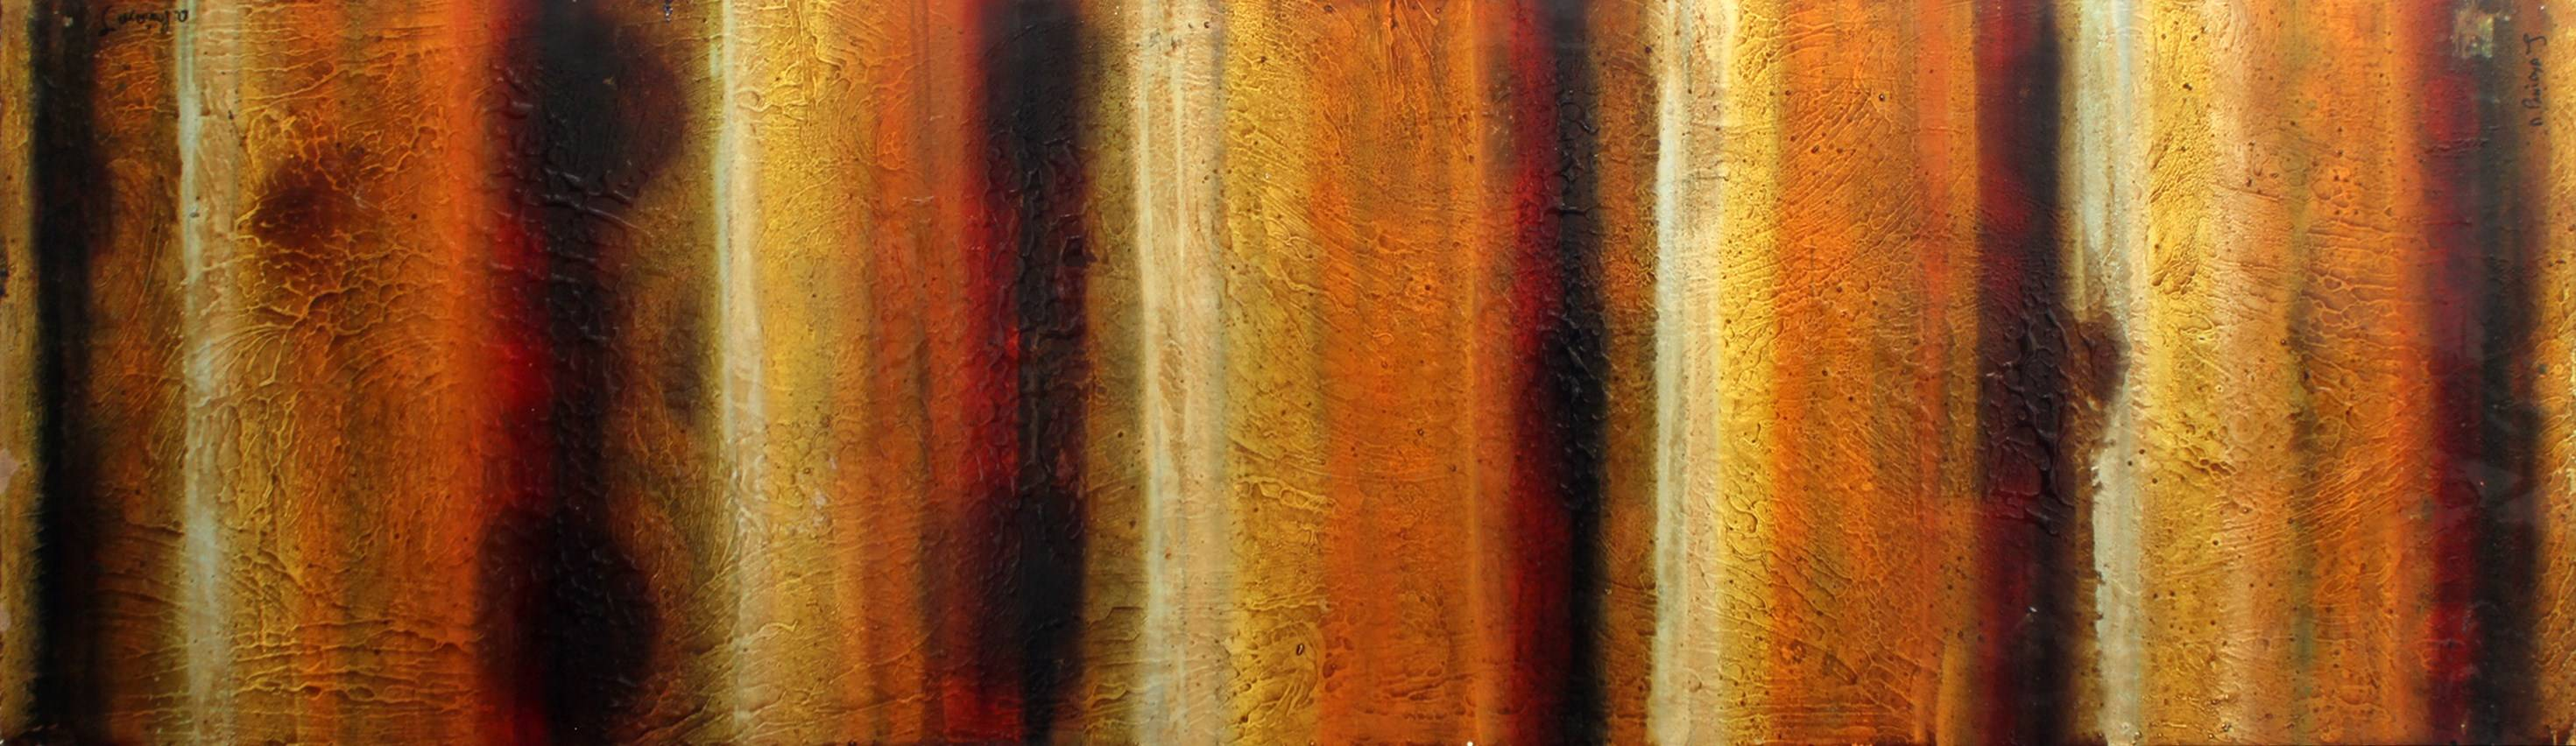 """Desert Heat,"" a 72"" x 36"" mixed media panel by artist Alberto Paniaya, evokes the sensation of a desert, with intensity lines through the light in the middle of the air."